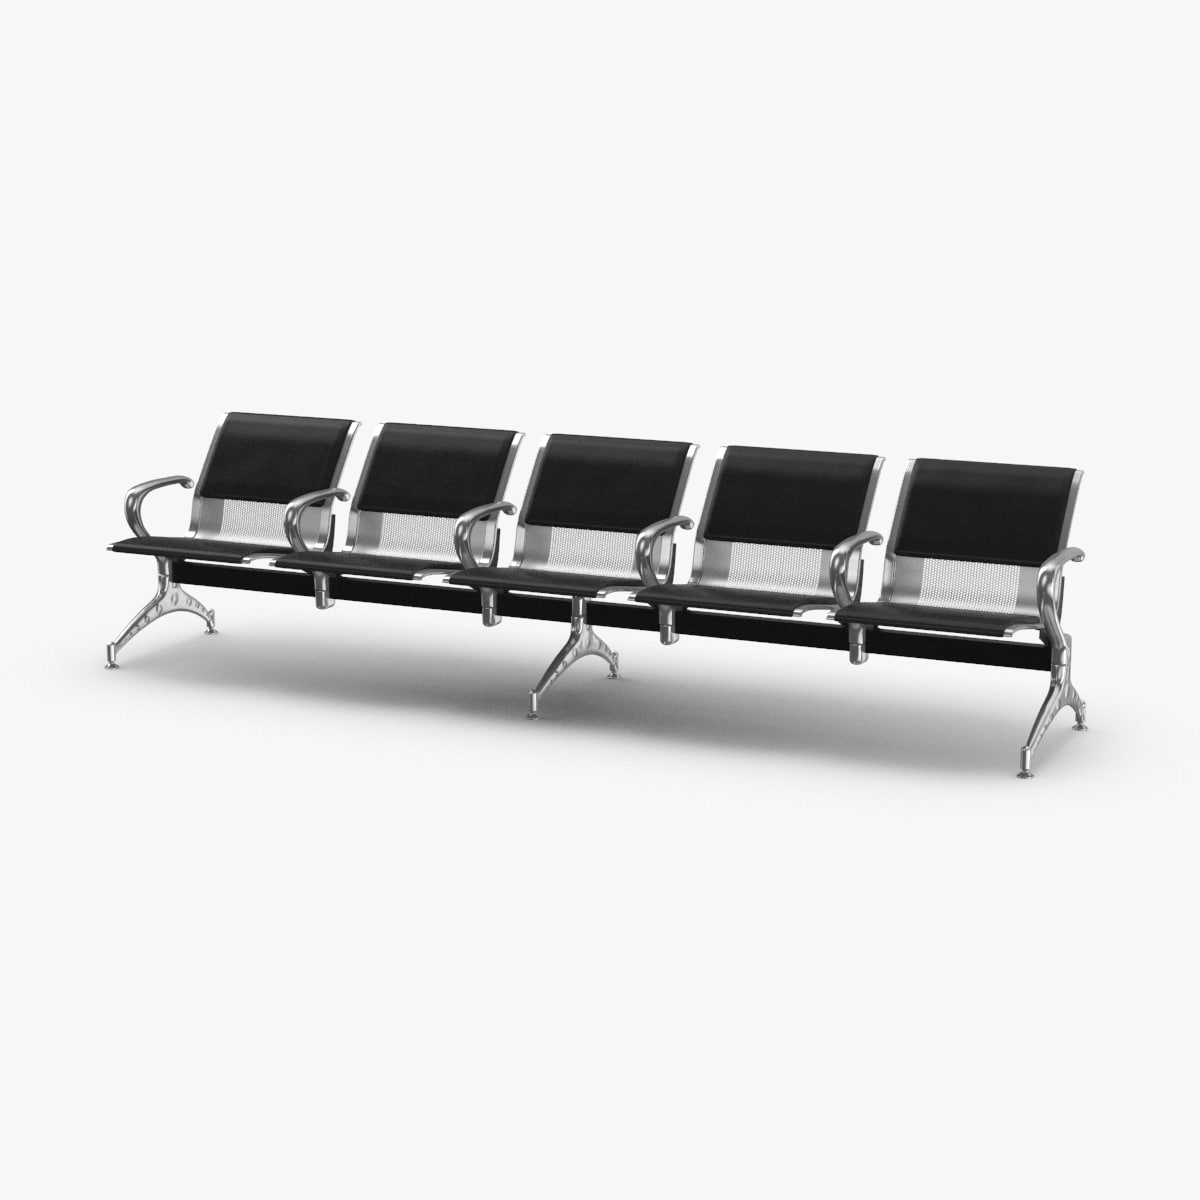 airport-row-of-chairs-01 model